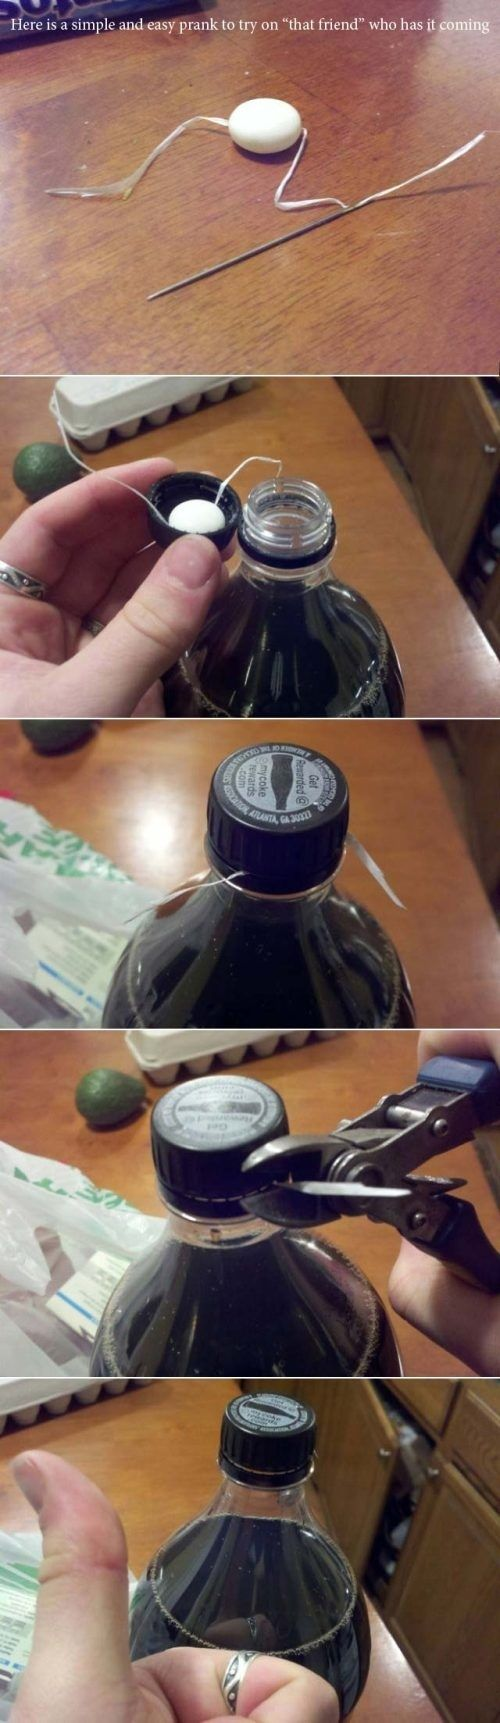 Hilariously Awesome Roommate Pranks